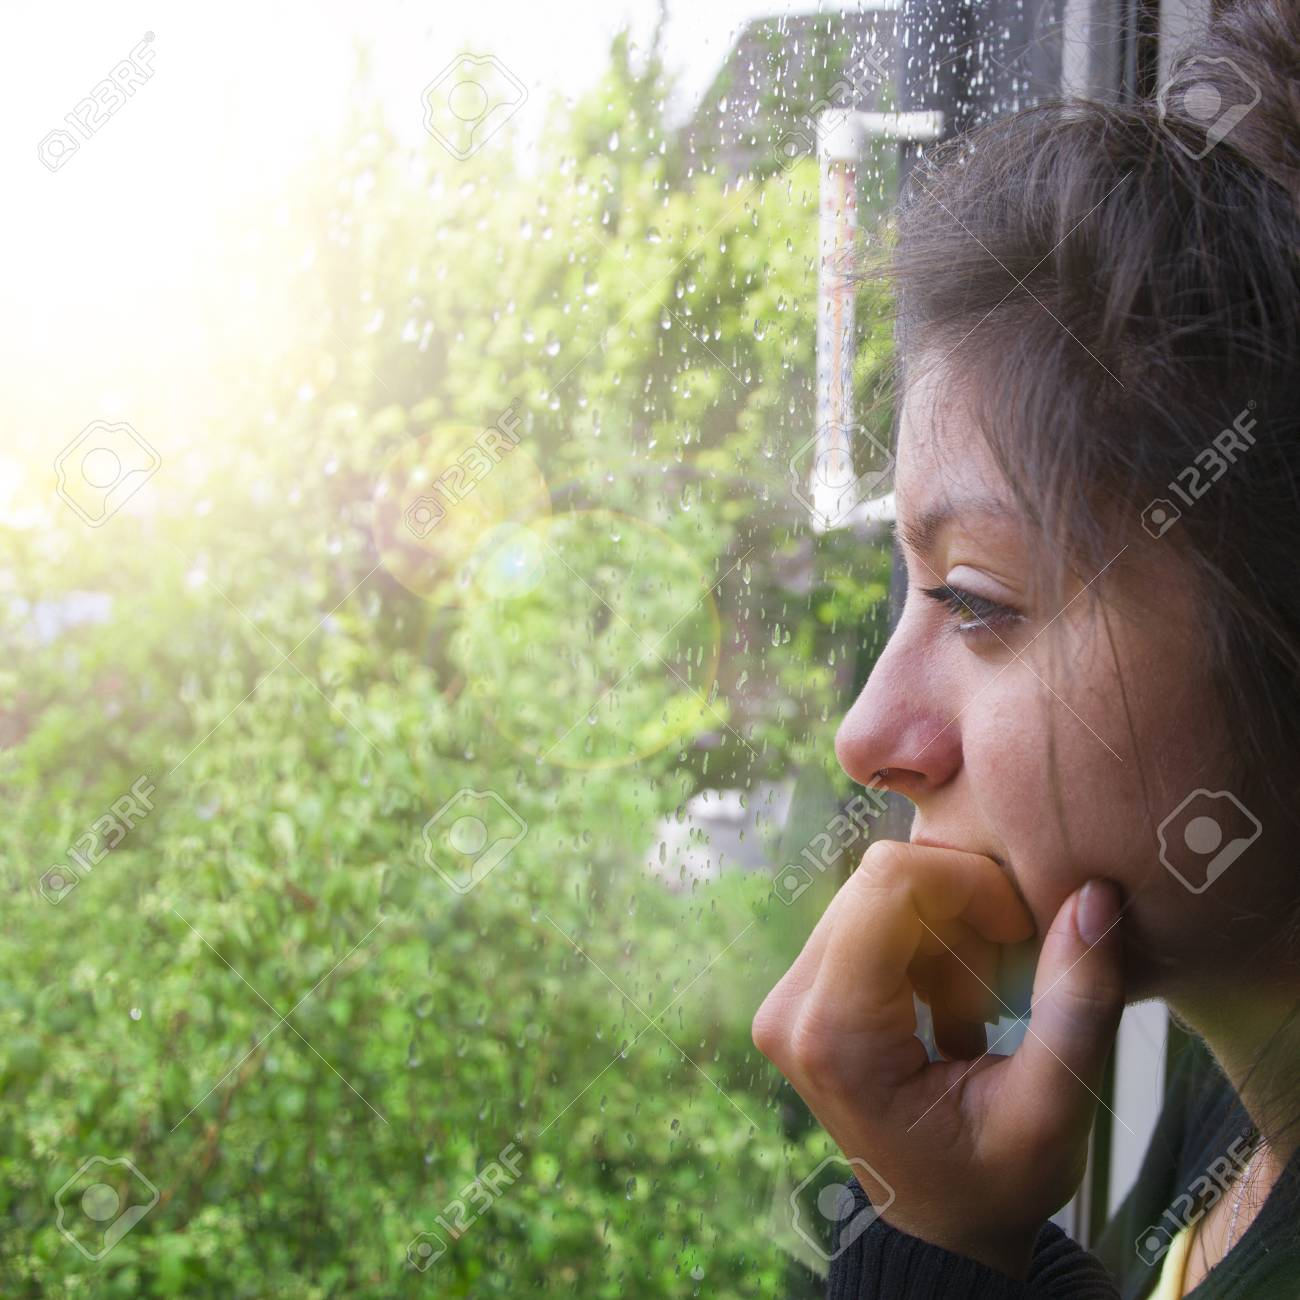 Sad girl looks out the window its raining. Woman with nice looking hear - 106640786